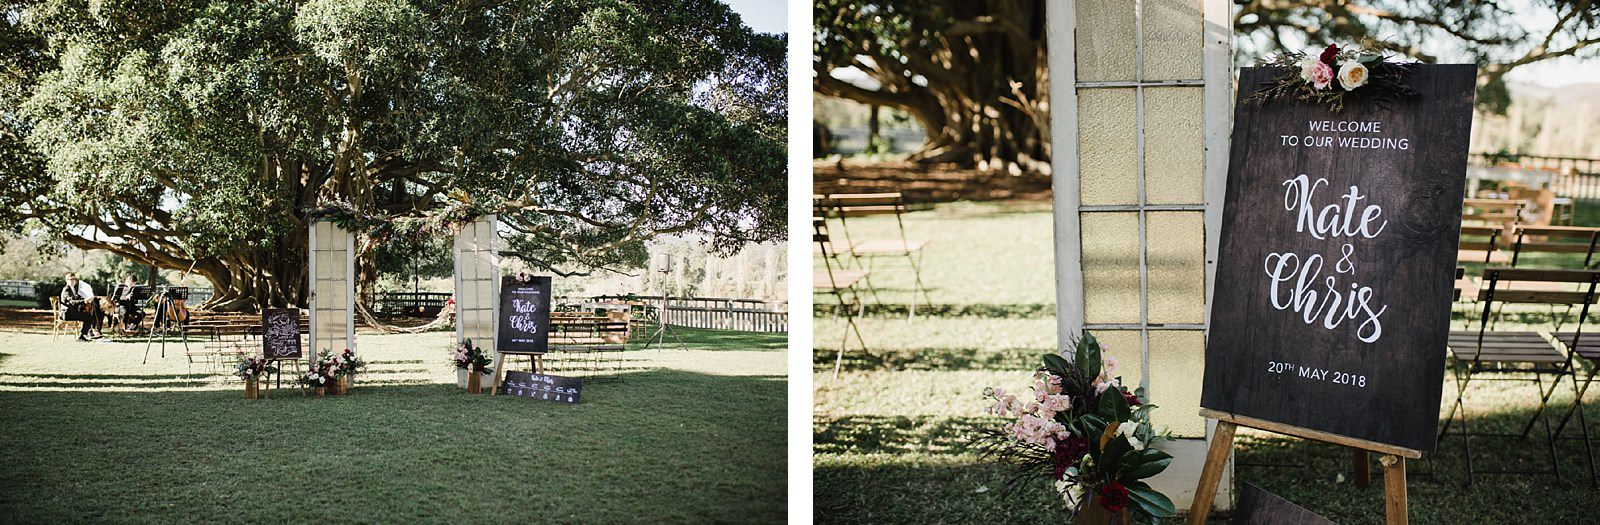 033Hunter Valley Wedding Photographers Bryce Noone Photography at Tocal Homestead Wedding Venue.jpg